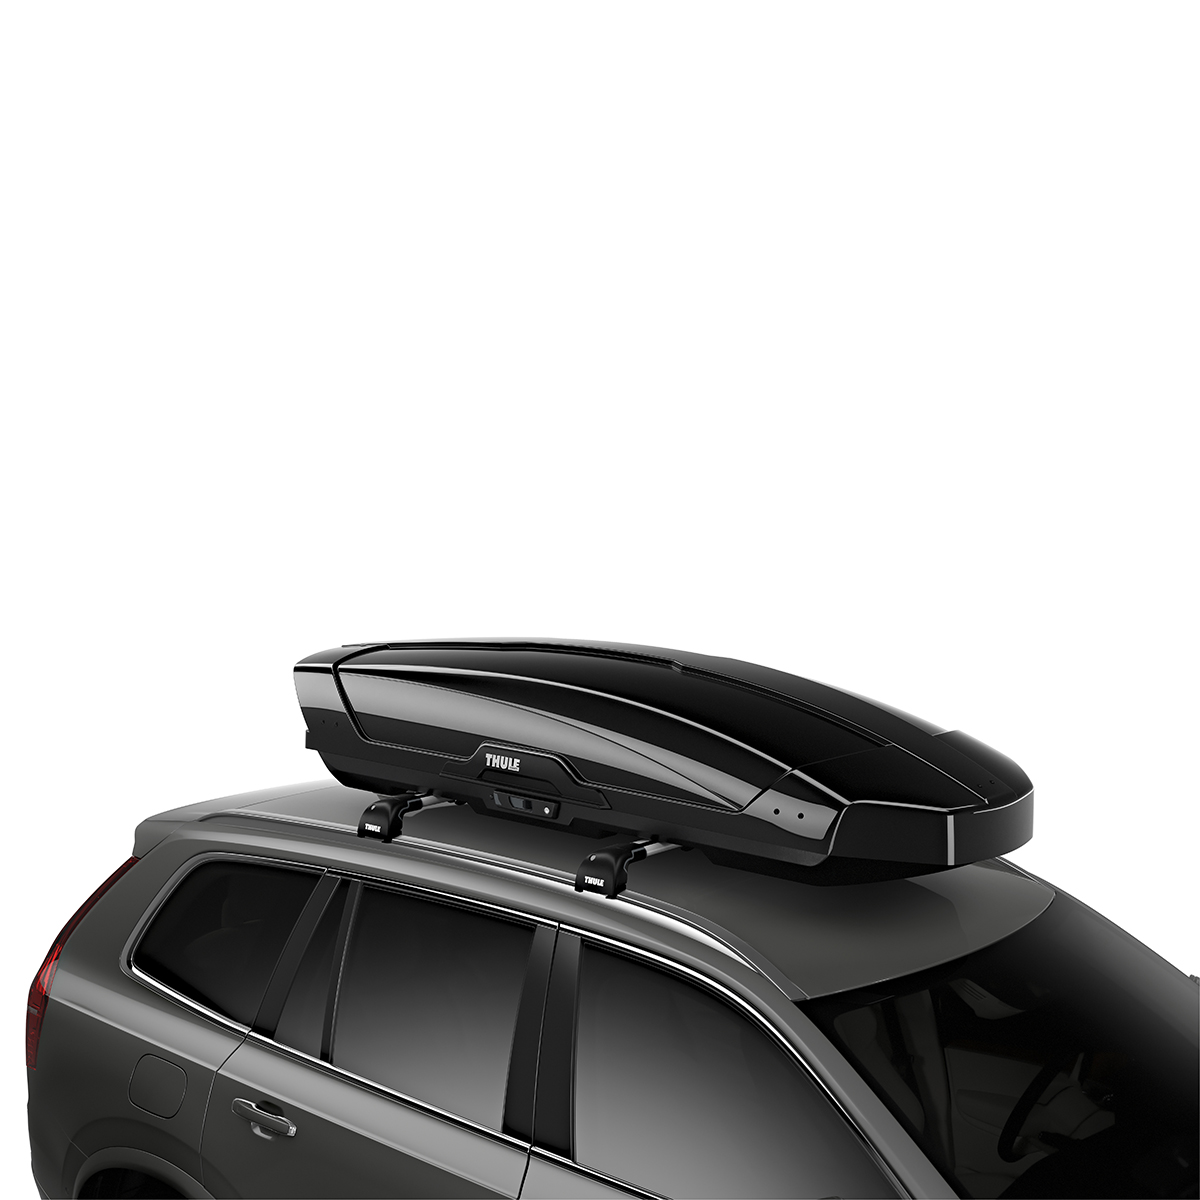 thule motion xt xl 800 roof box. Black Bedroom Furniture Sets. Home Design Ideas